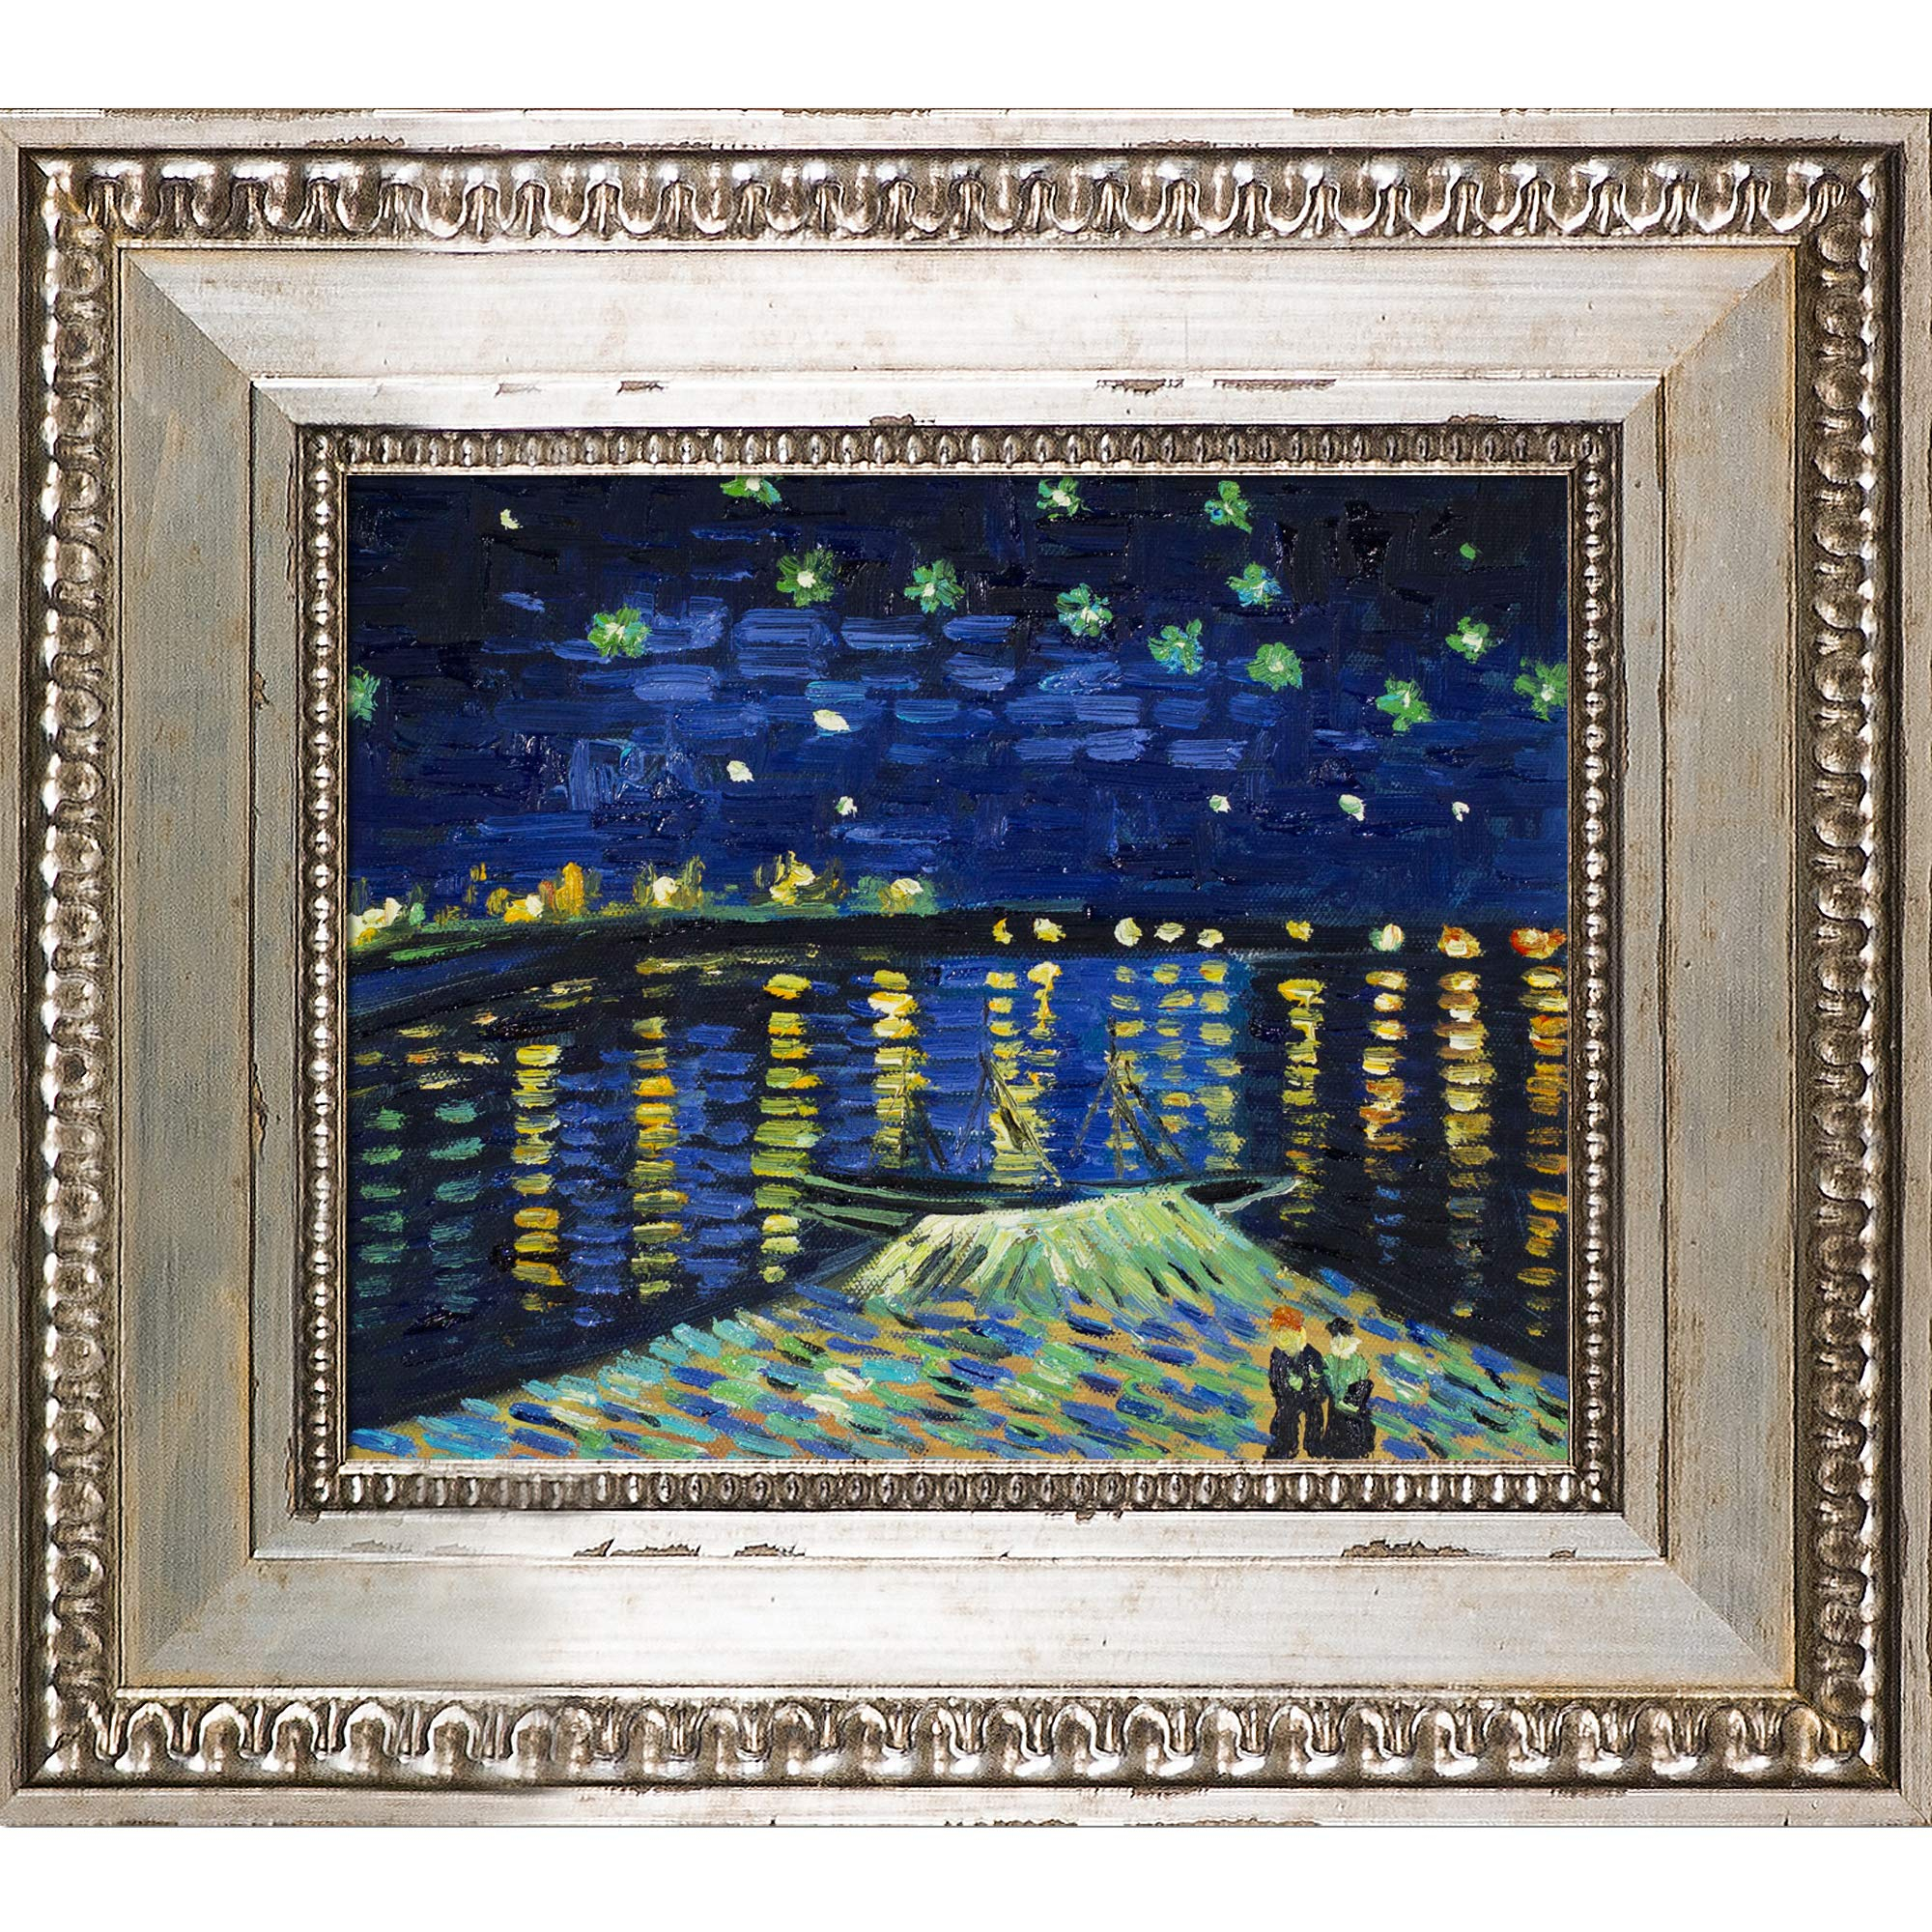 La Pastiche Starry Night Over The Rhone Framed Oil Painting Within Latest Blended Fabric Van Gogh Starry Night Over The Rhone Wall Hangings (View 6 of 20)